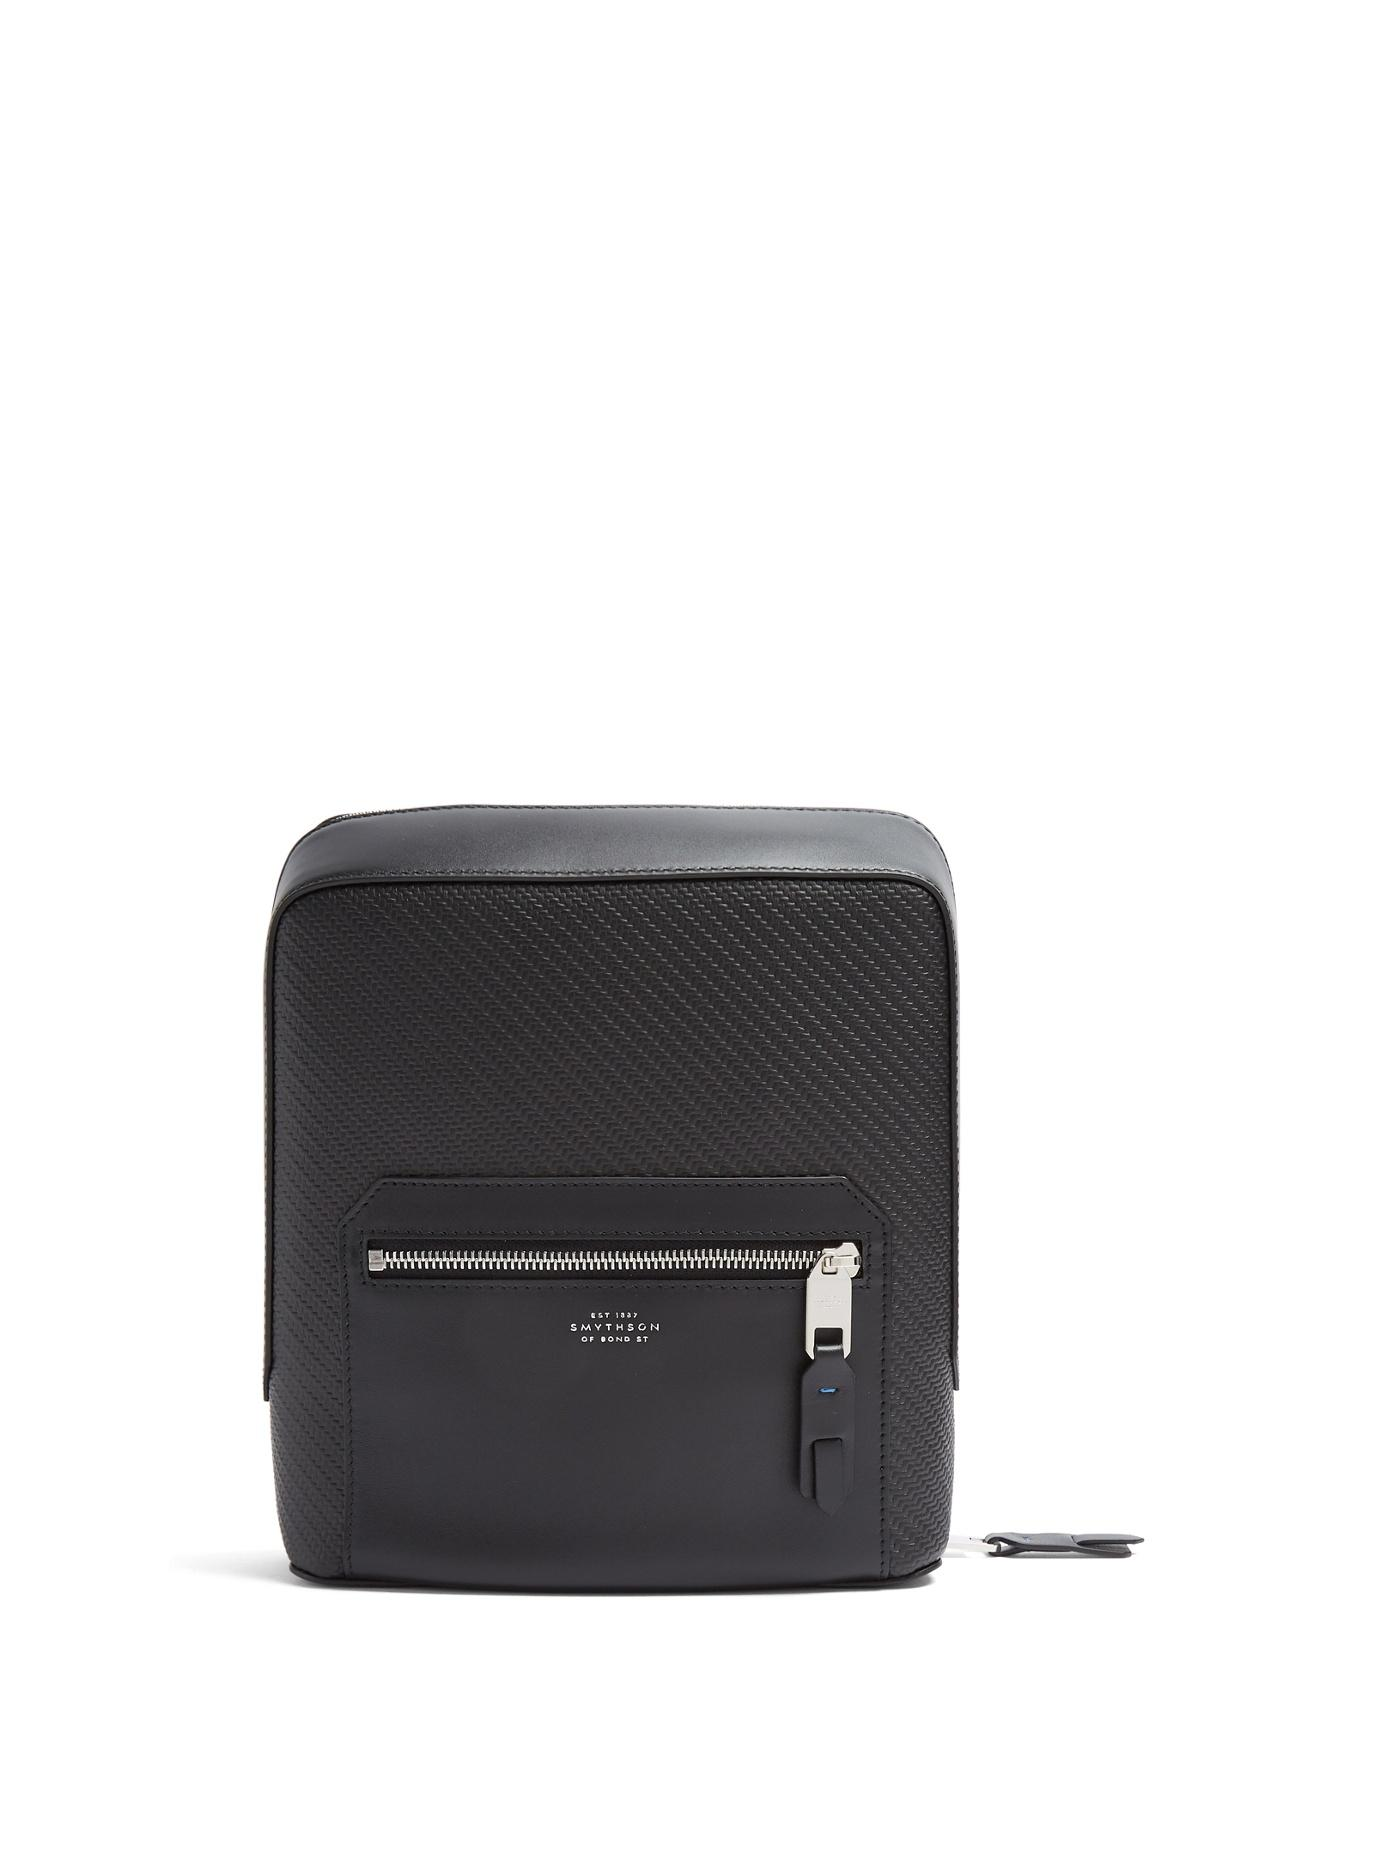 Smythson - Greenwich Woven Leather Tech Case - Mens - Black